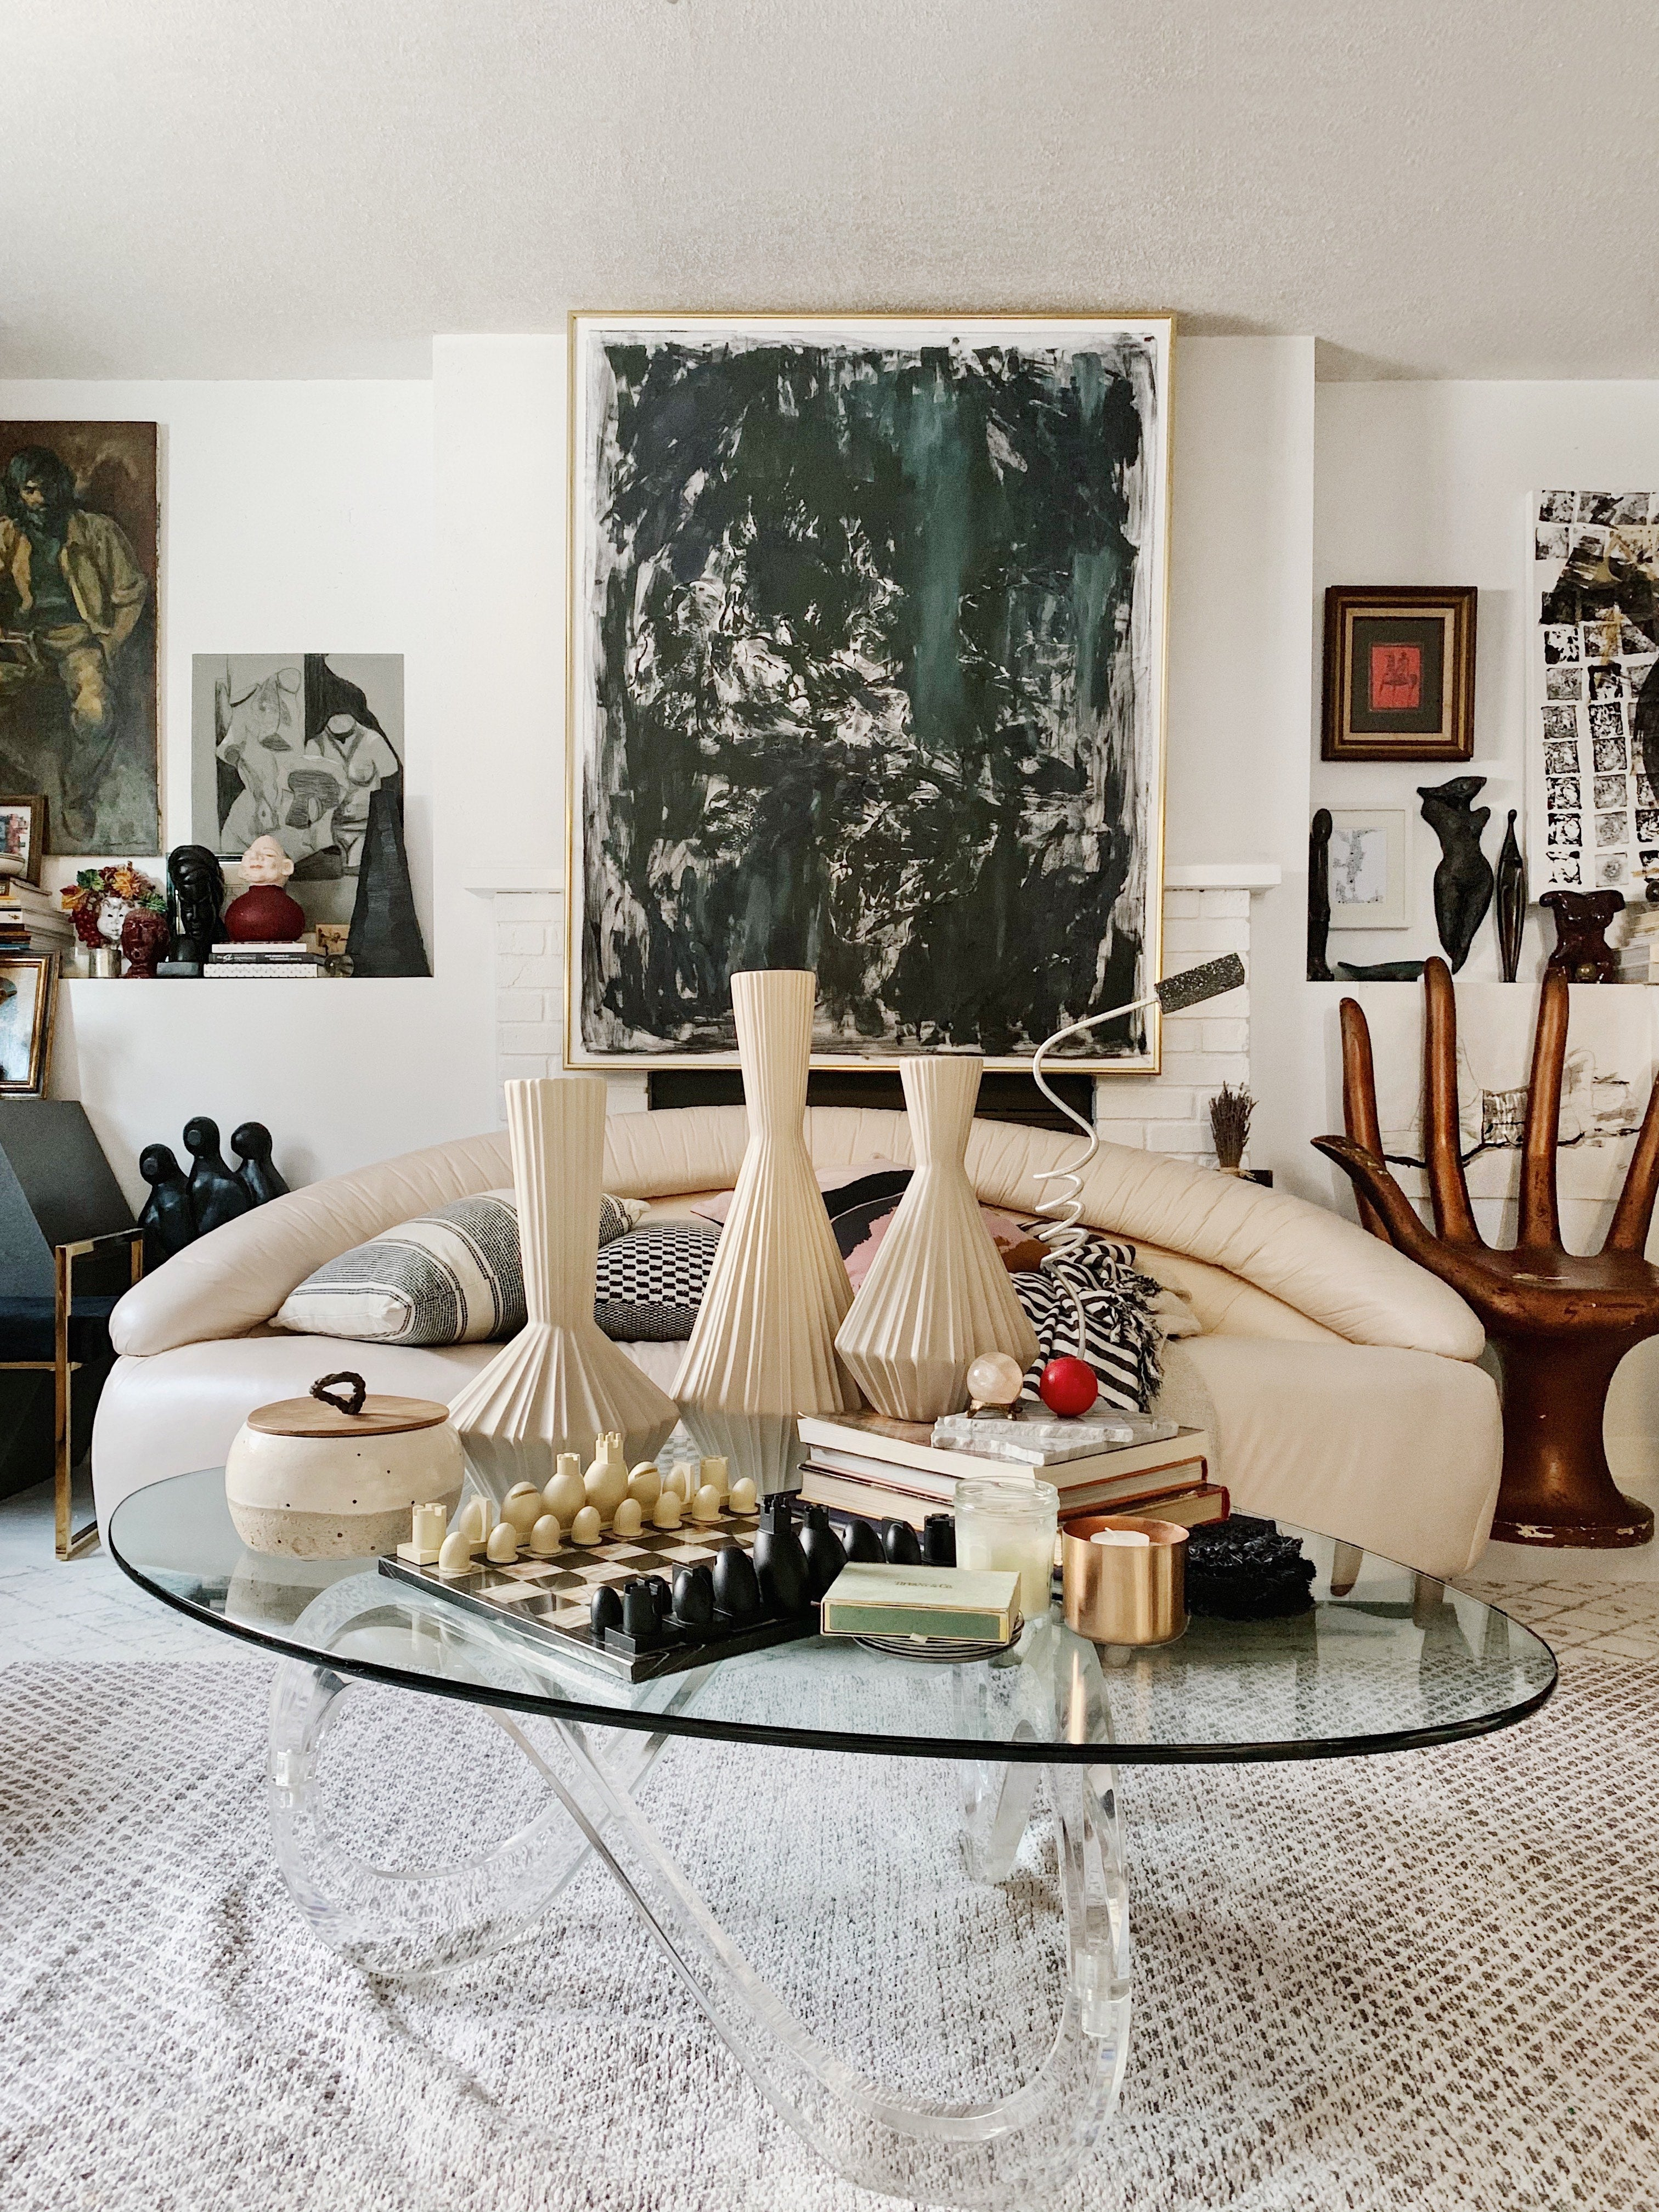 white retro sofa with glass coffee table with a lot of vases